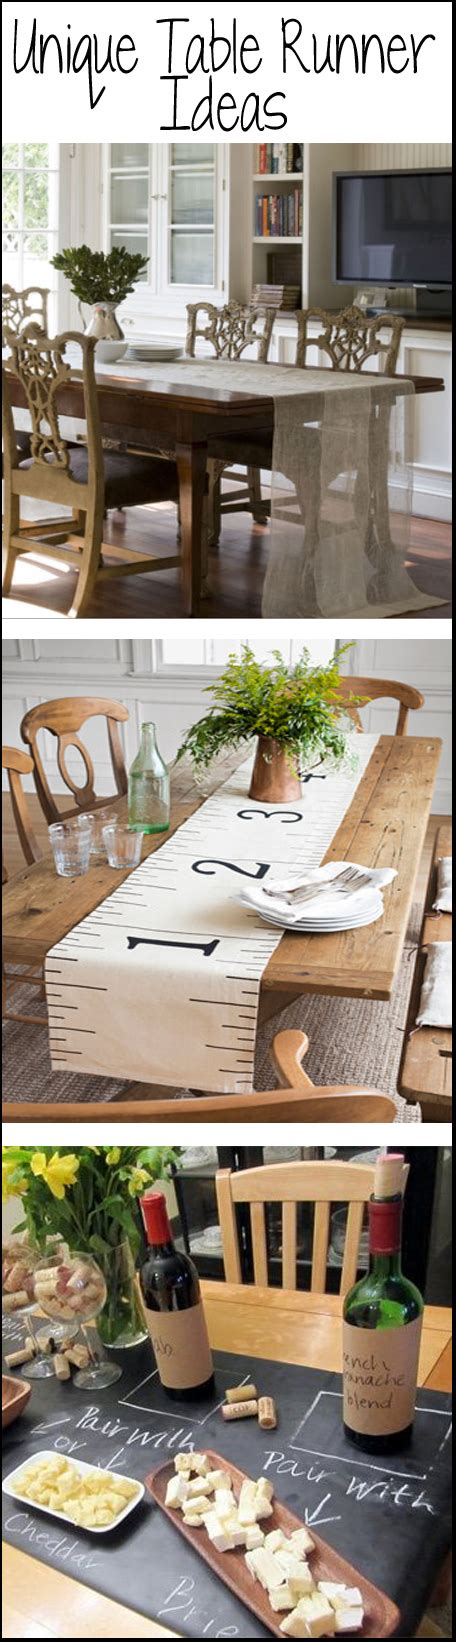 Table Runner Ideas by Unique Table Runner Ideas